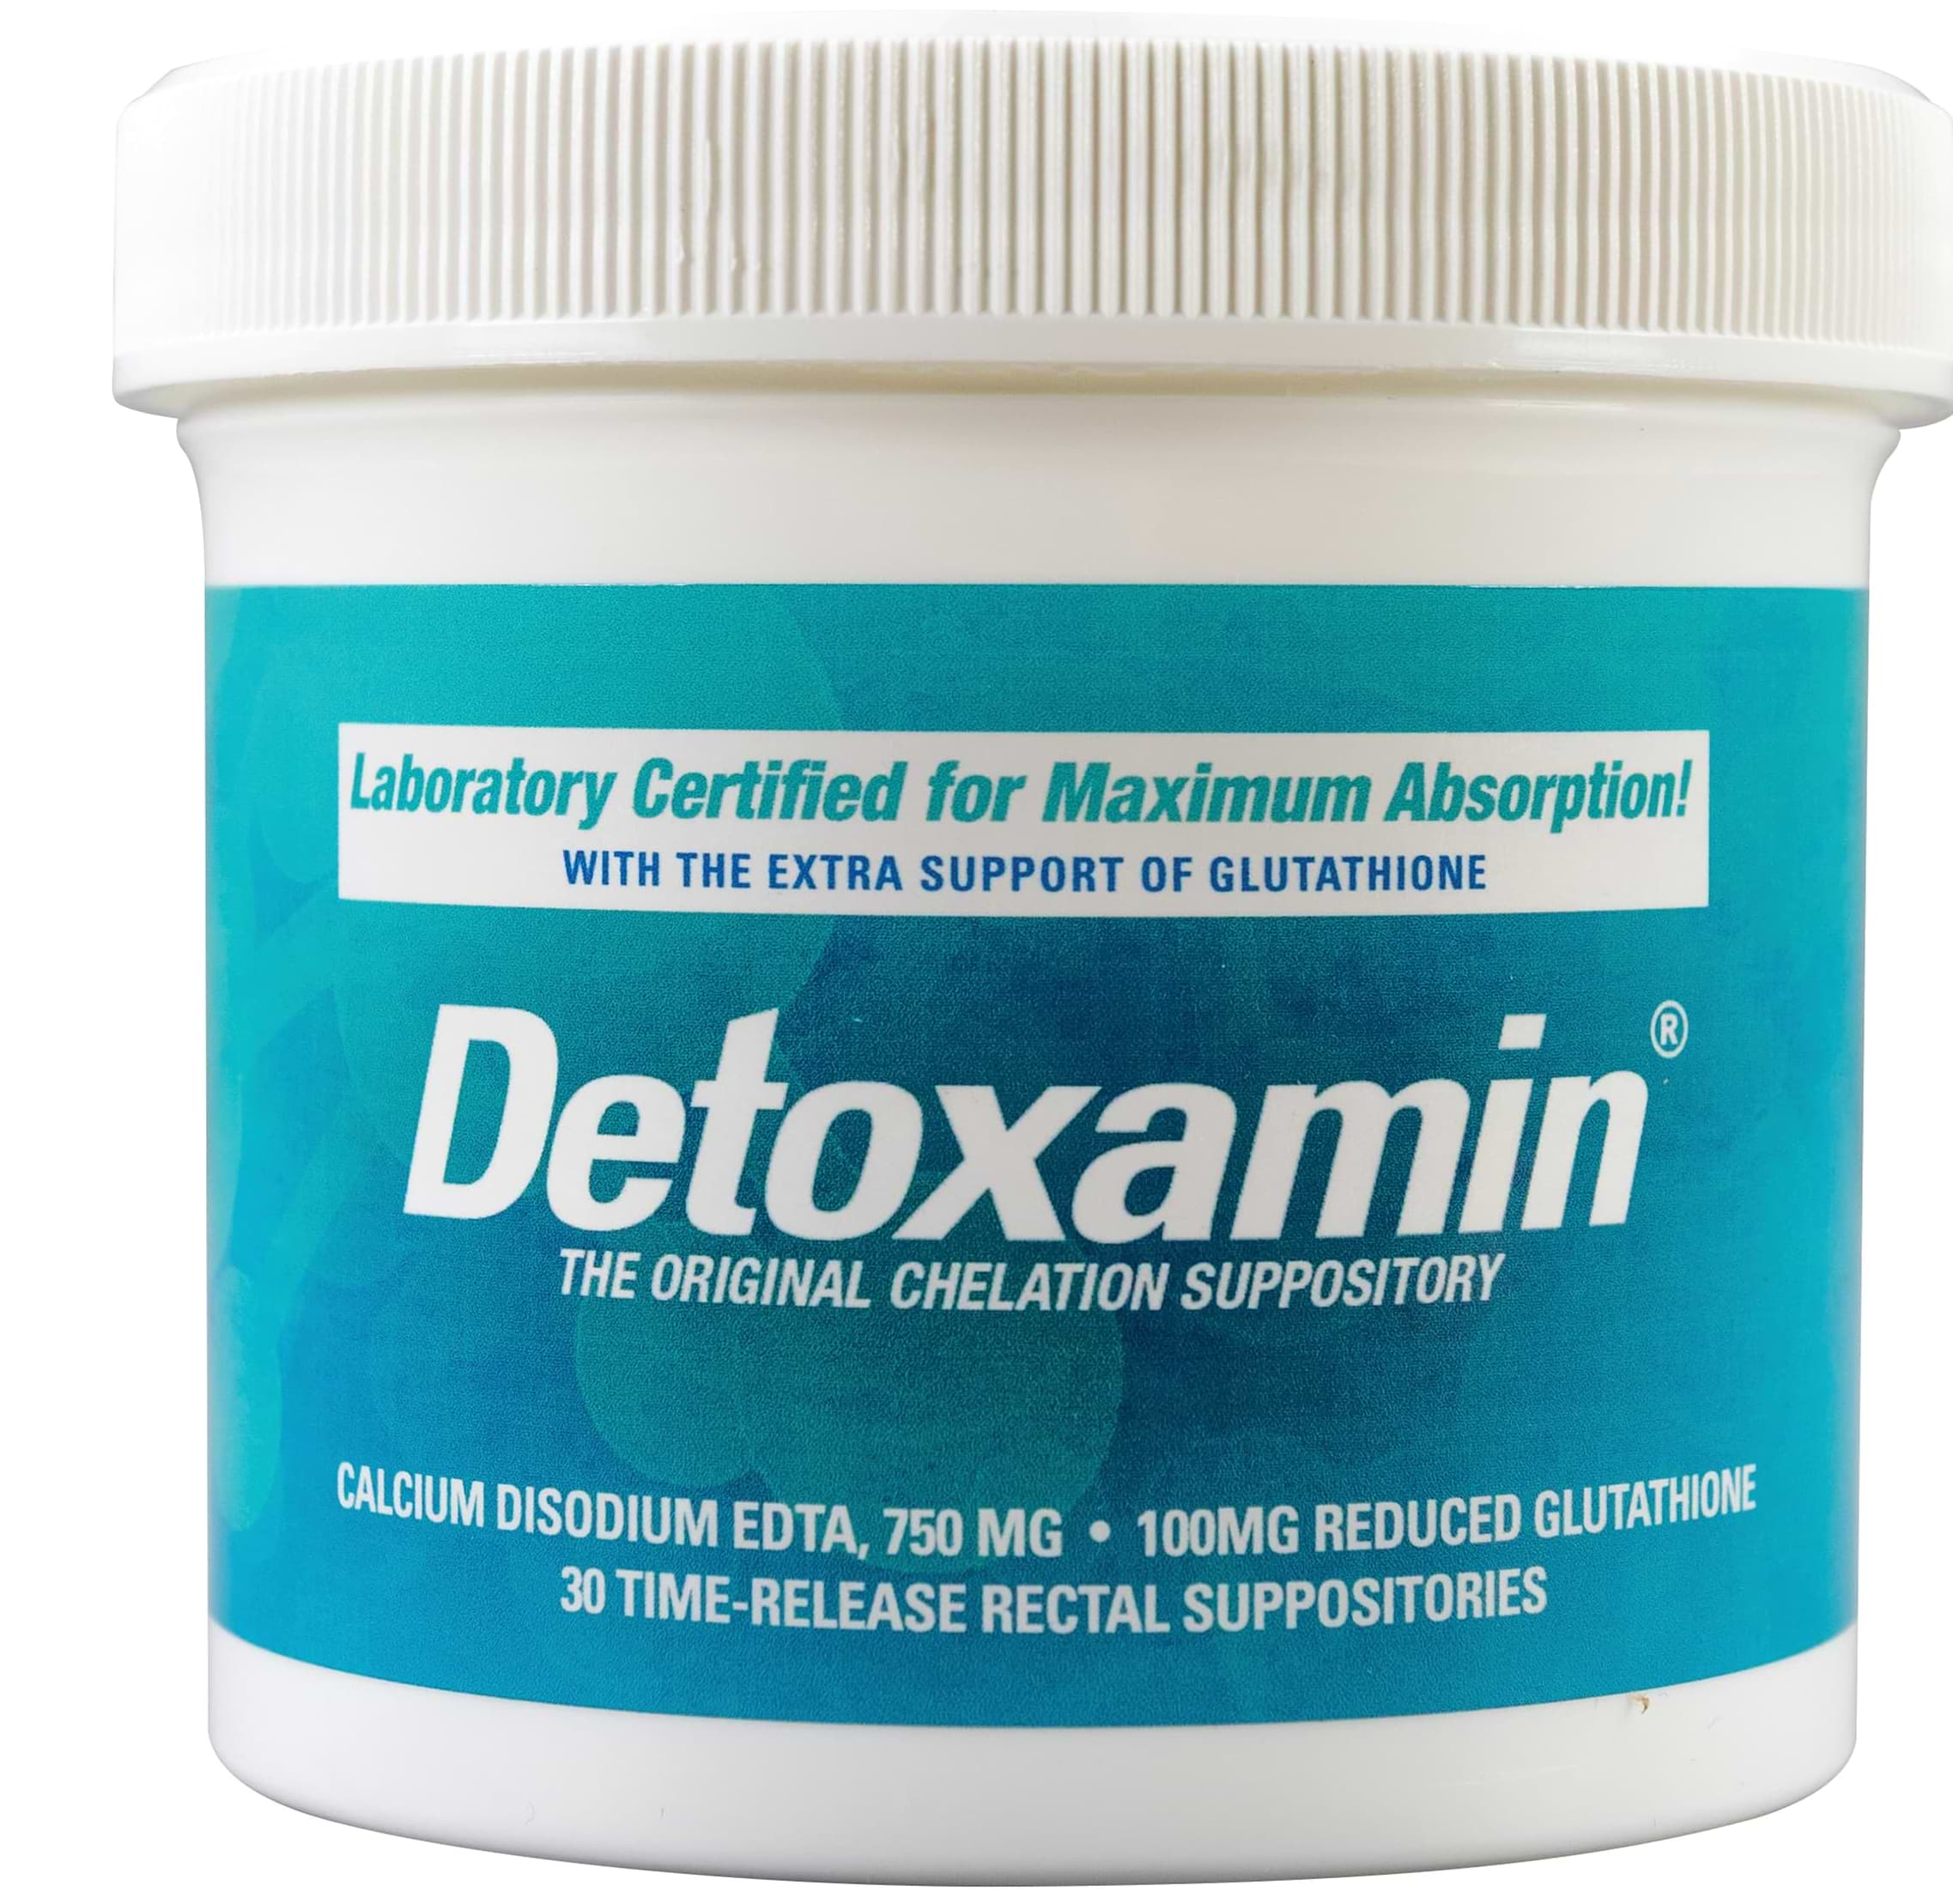 detoxamin are the best edta suppositories